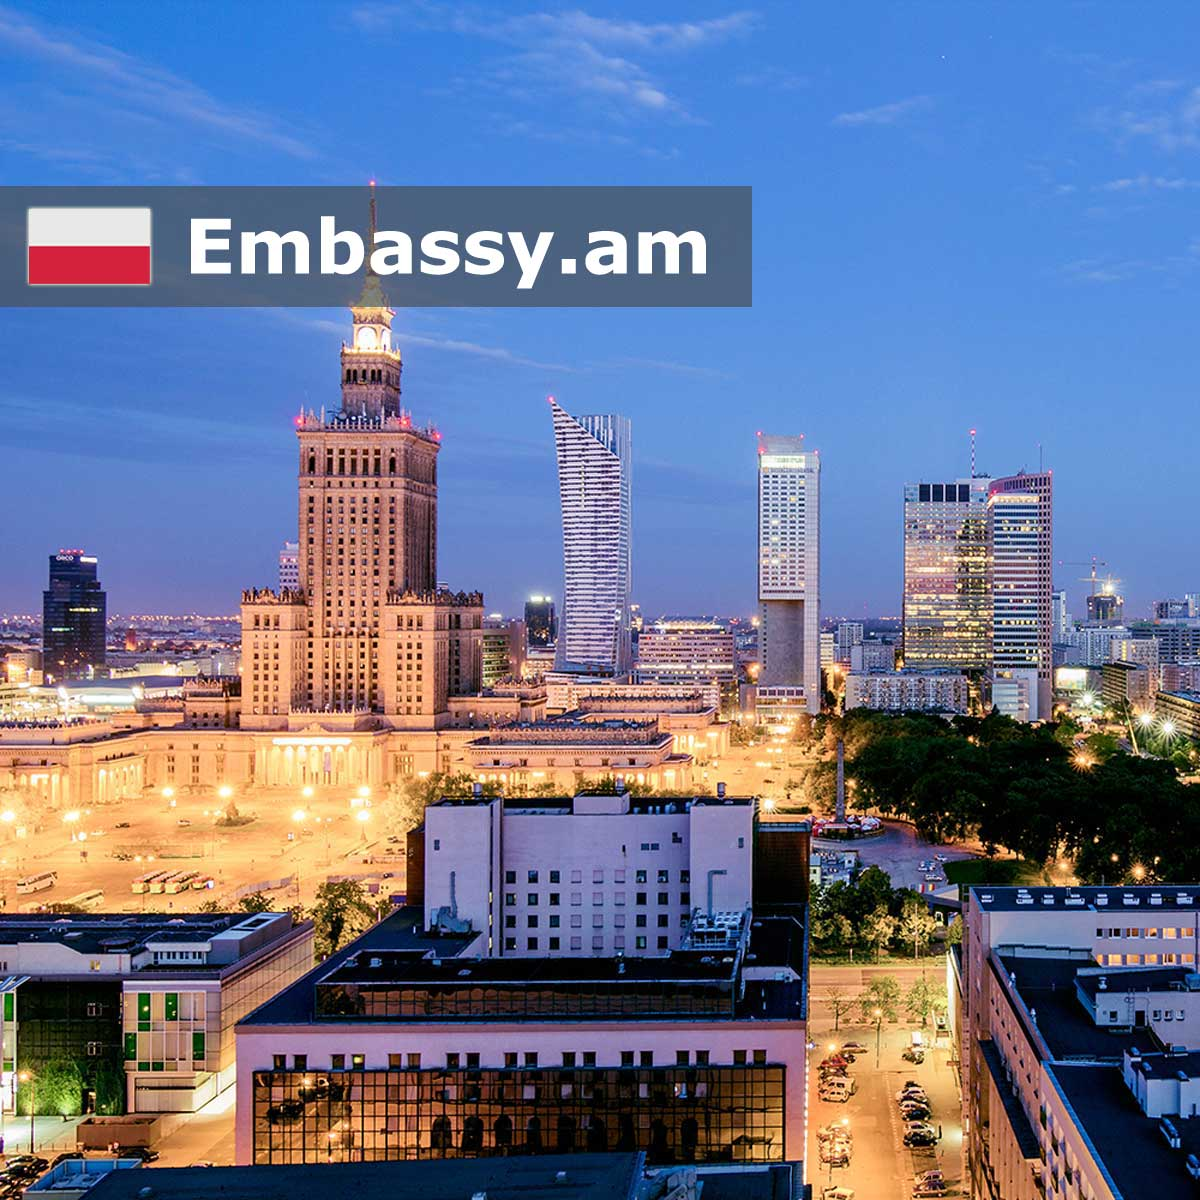 Hotels in Poland - Embassy.am